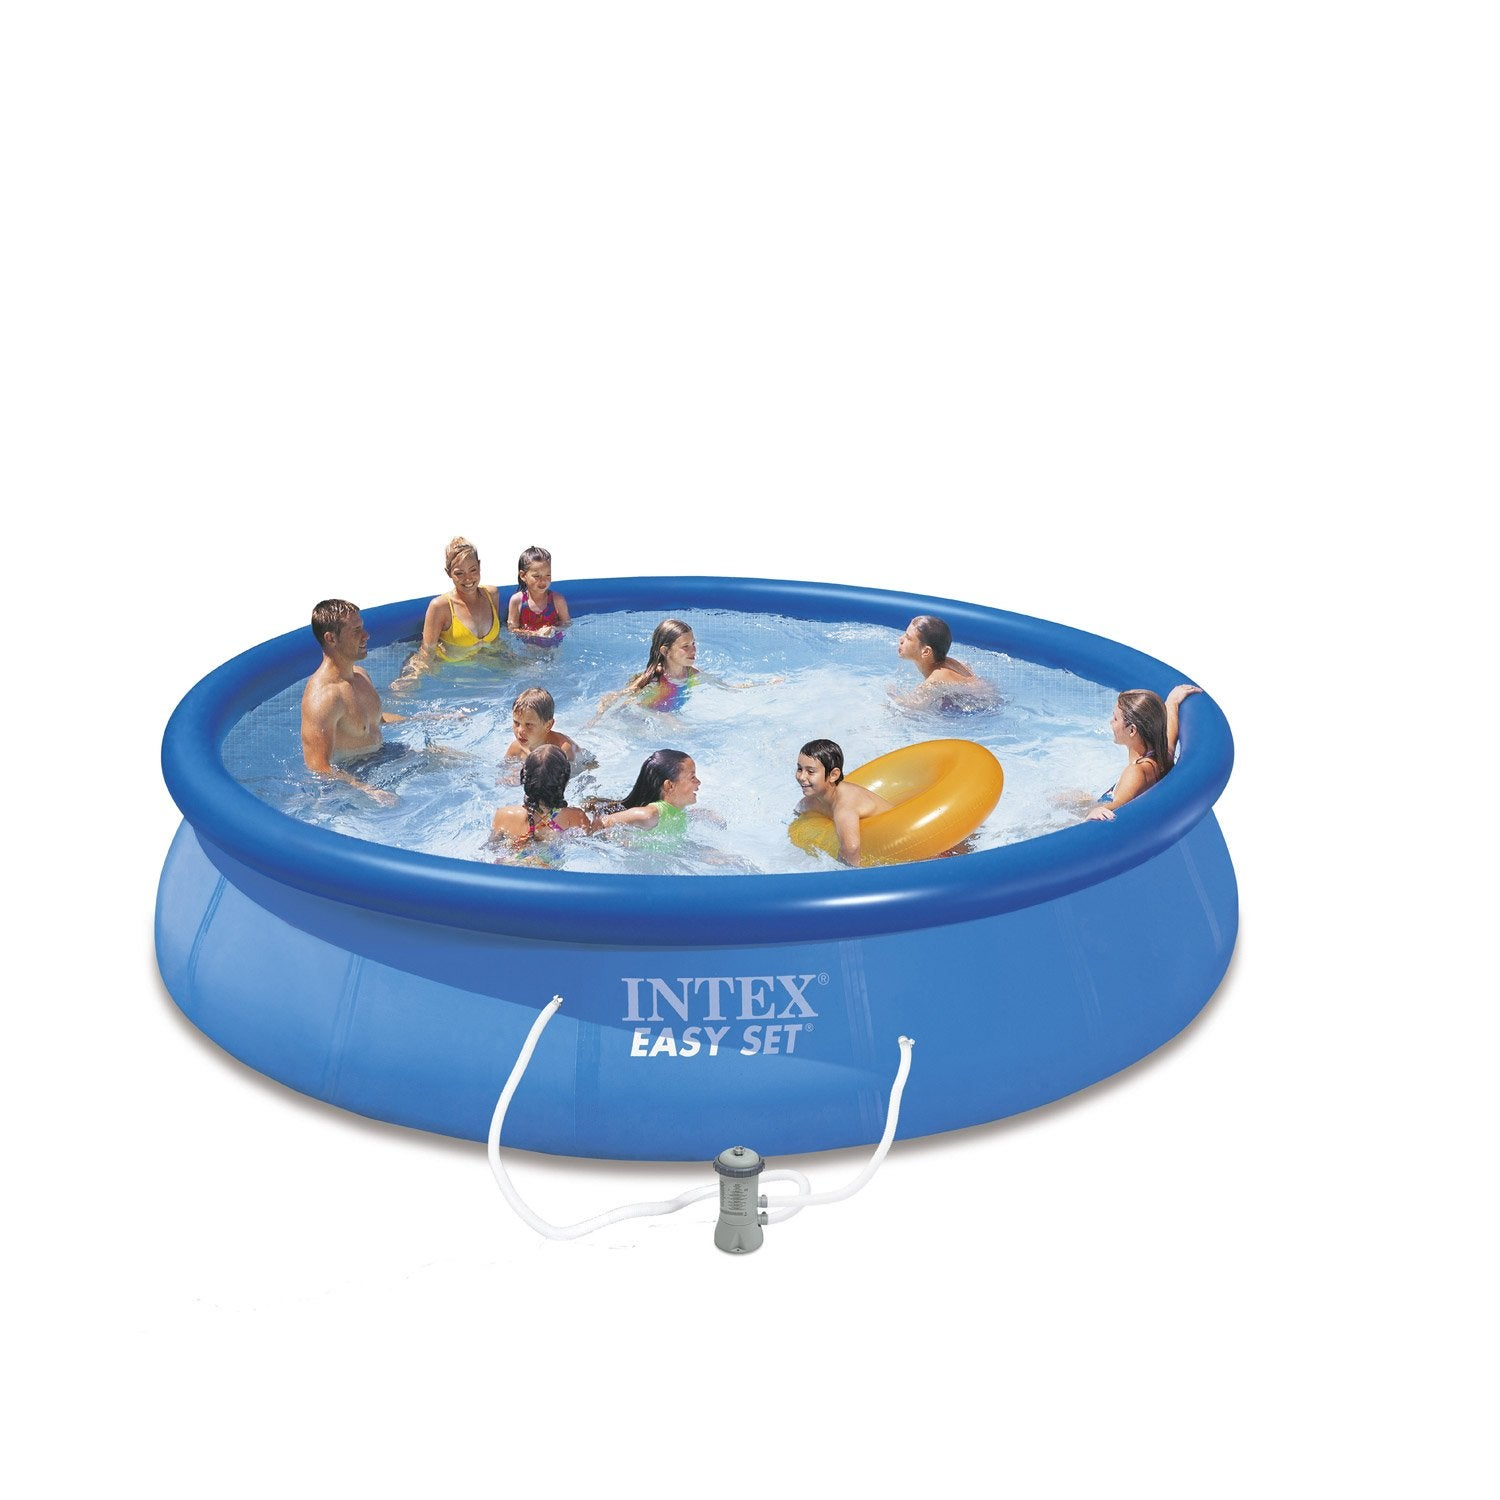 Piscine hors sol autoportante gonflable easy set intex for Cloture pour piscine gonflable